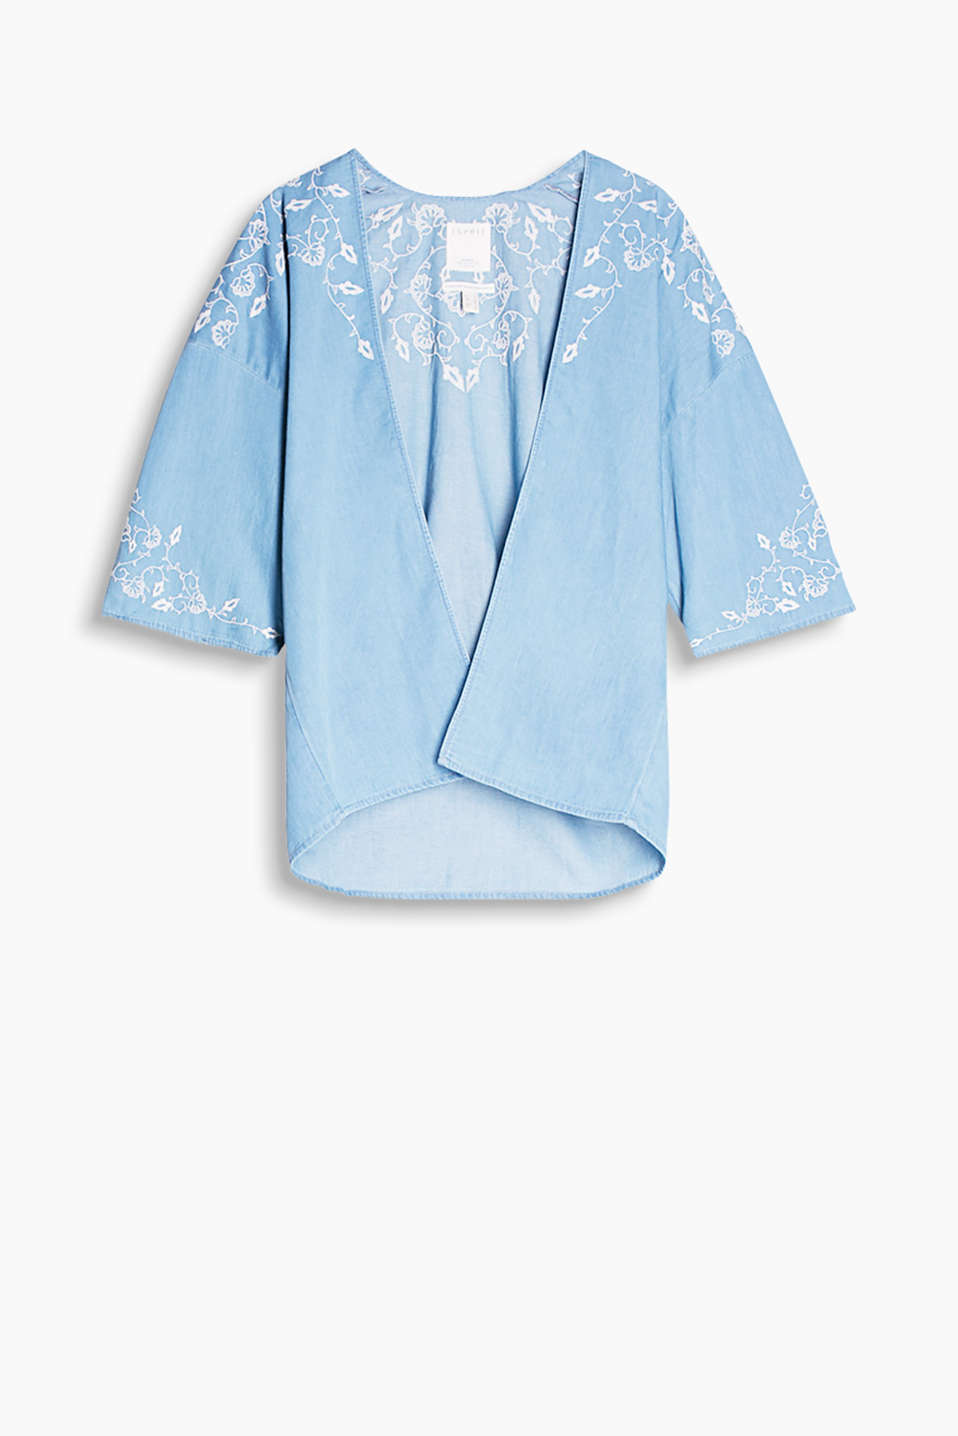 Open denim jacket in a kimono style with floral embroidery